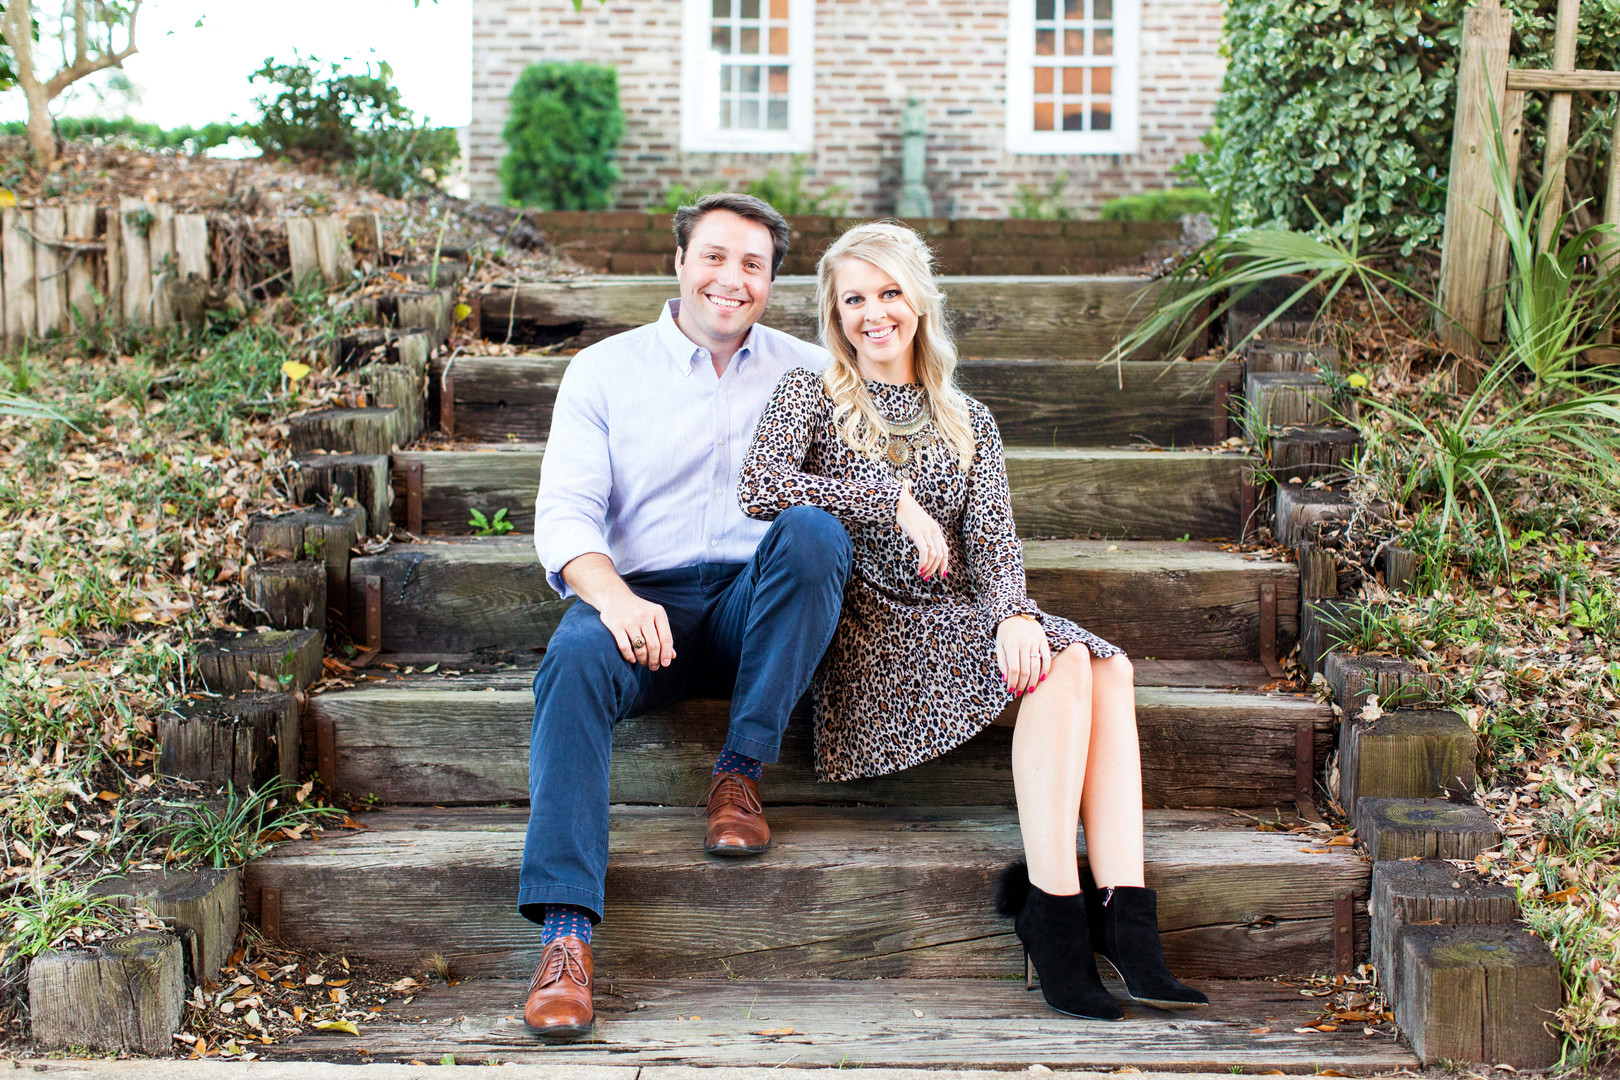 Scott & Bree's Kaminski House & Museum Engagement